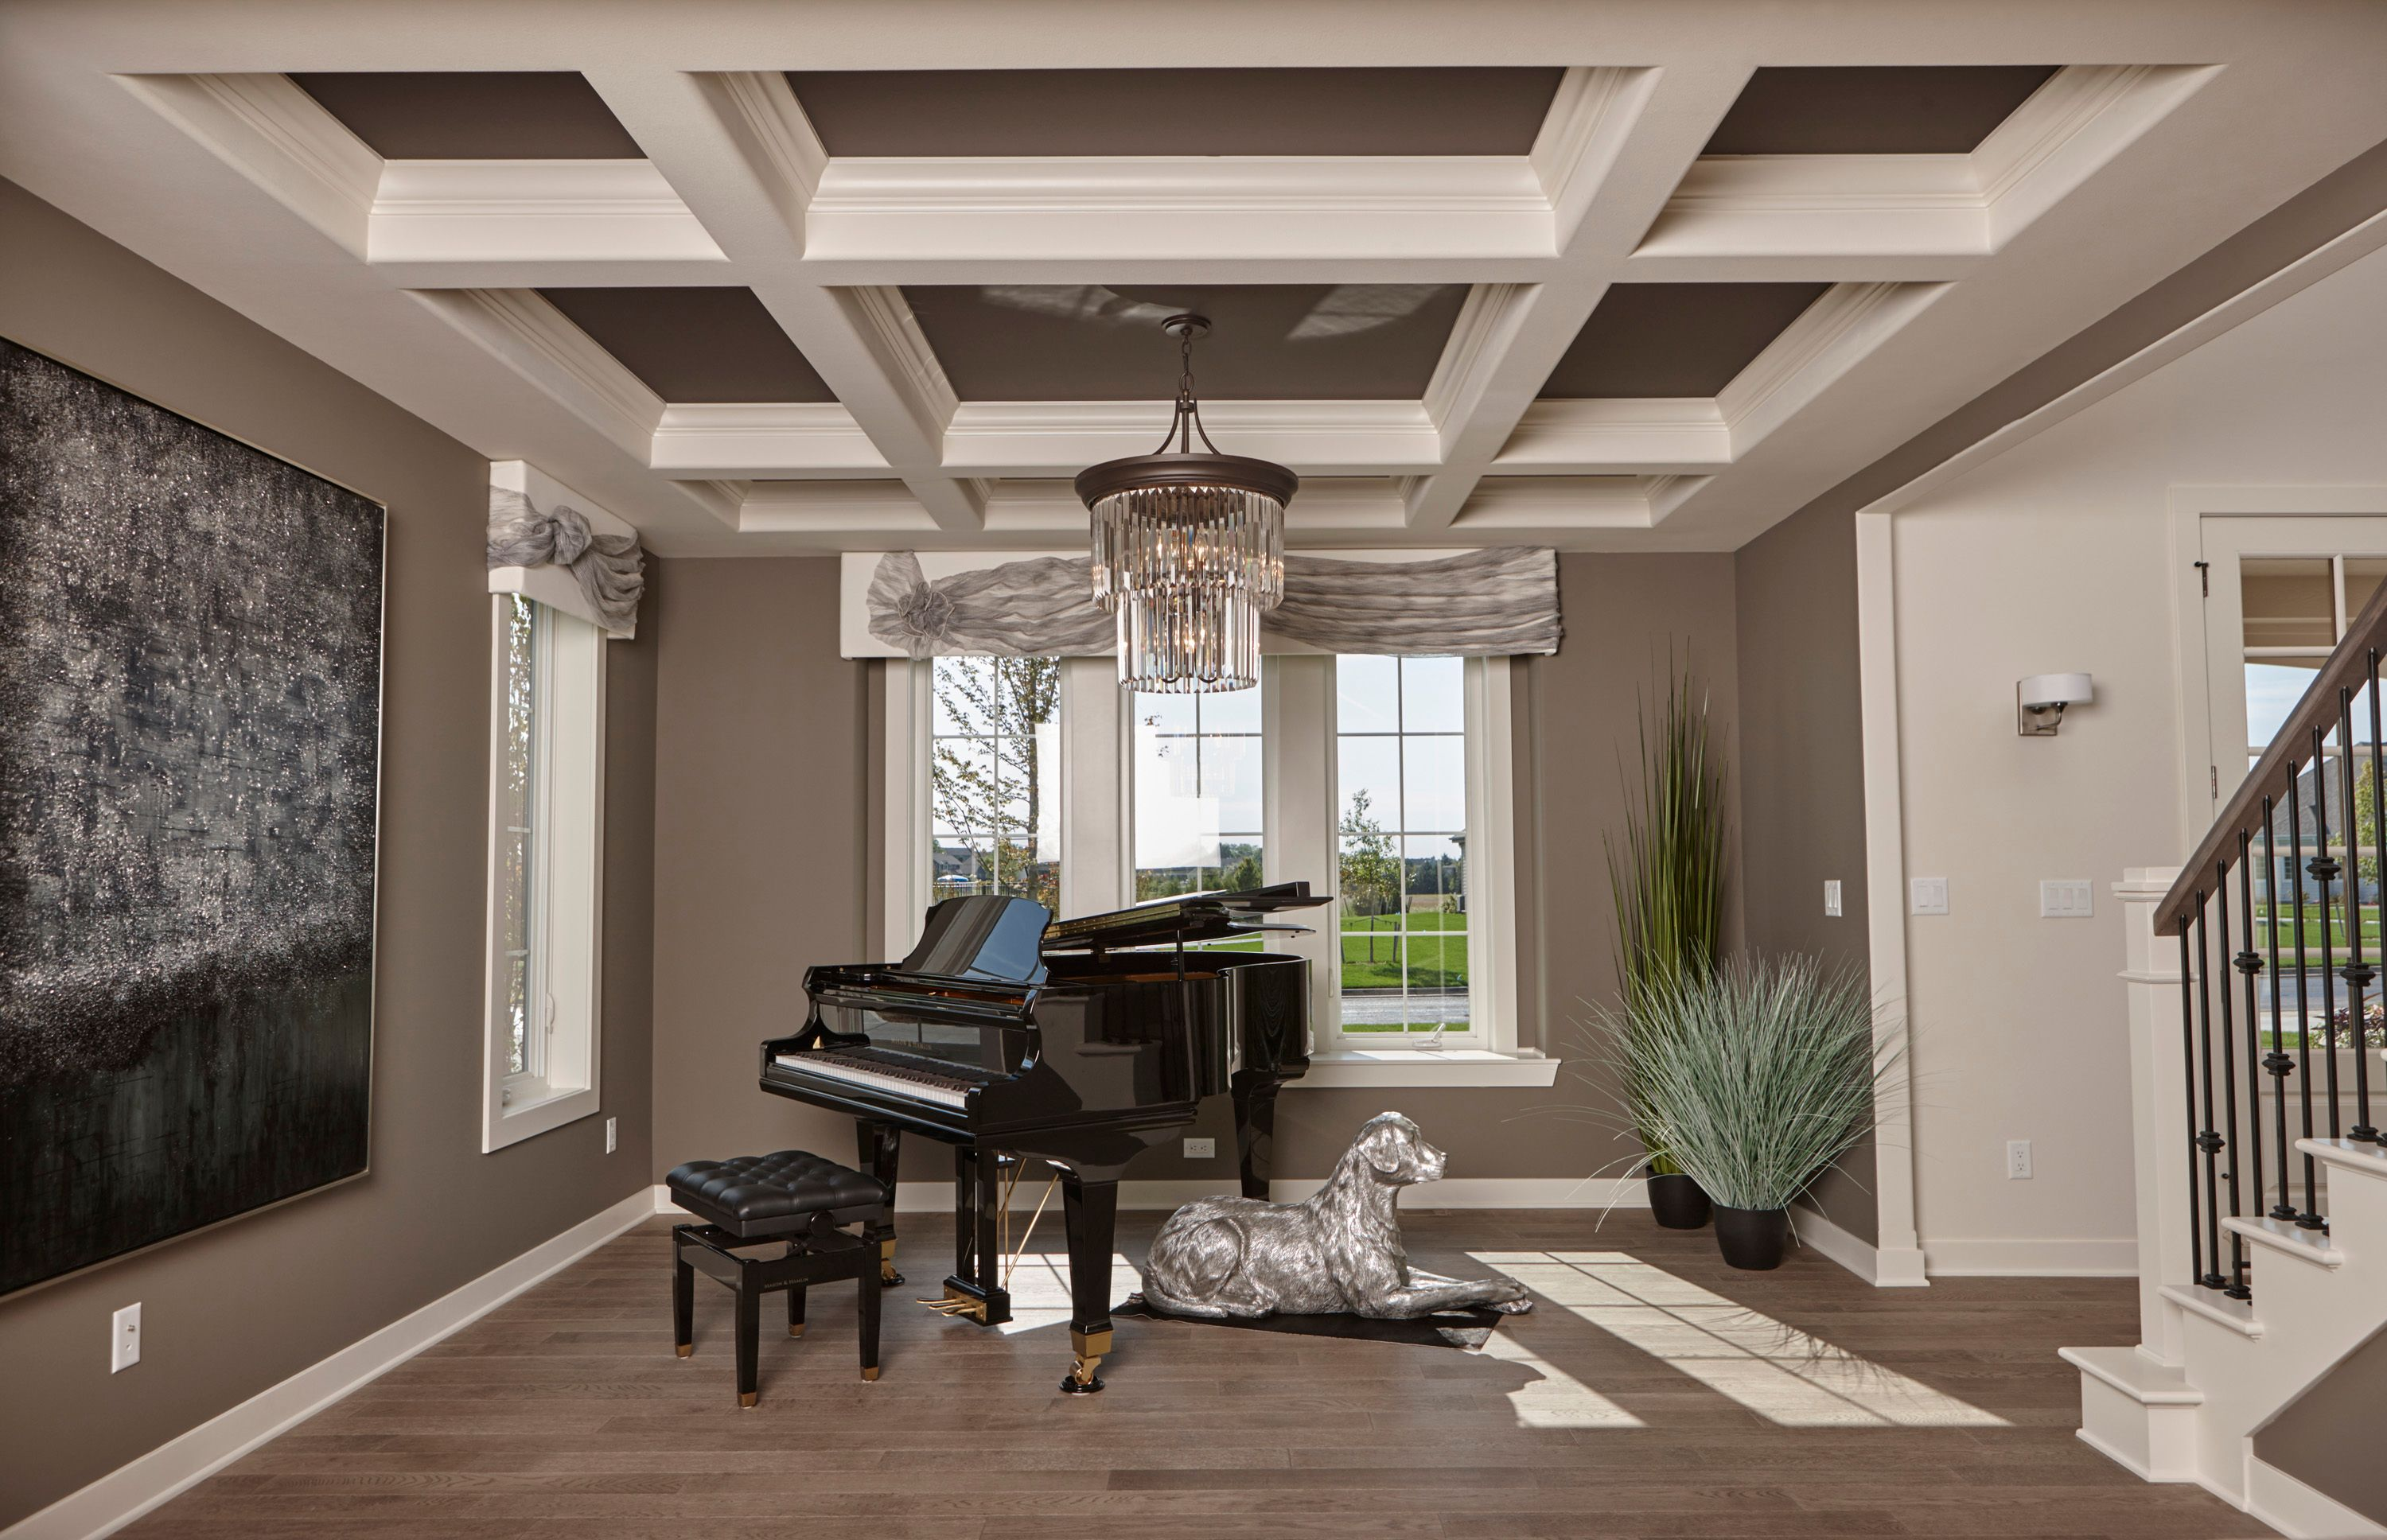 Living Area featured in The Verona, Plan 3000 By Bielinski Homes, Inc.